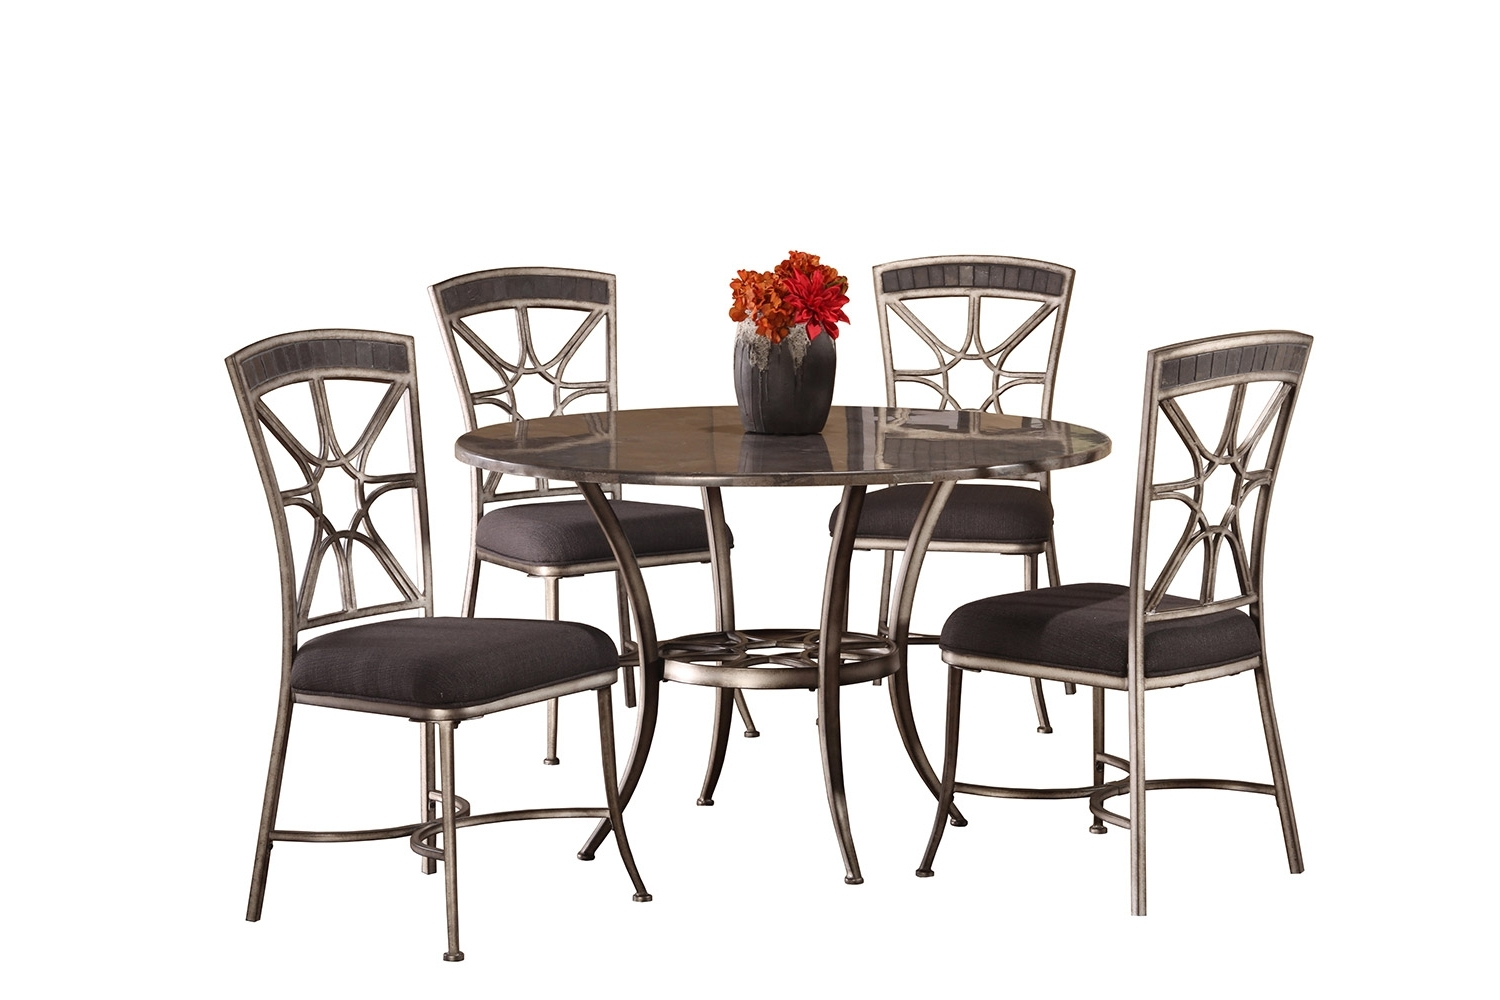 Chandler Extension Dining Tables Throughout Best And Newest Hillsdale Chandler 5 Piece Dining Set – Black Pewter/blue Stone Top (View 10 of 25)